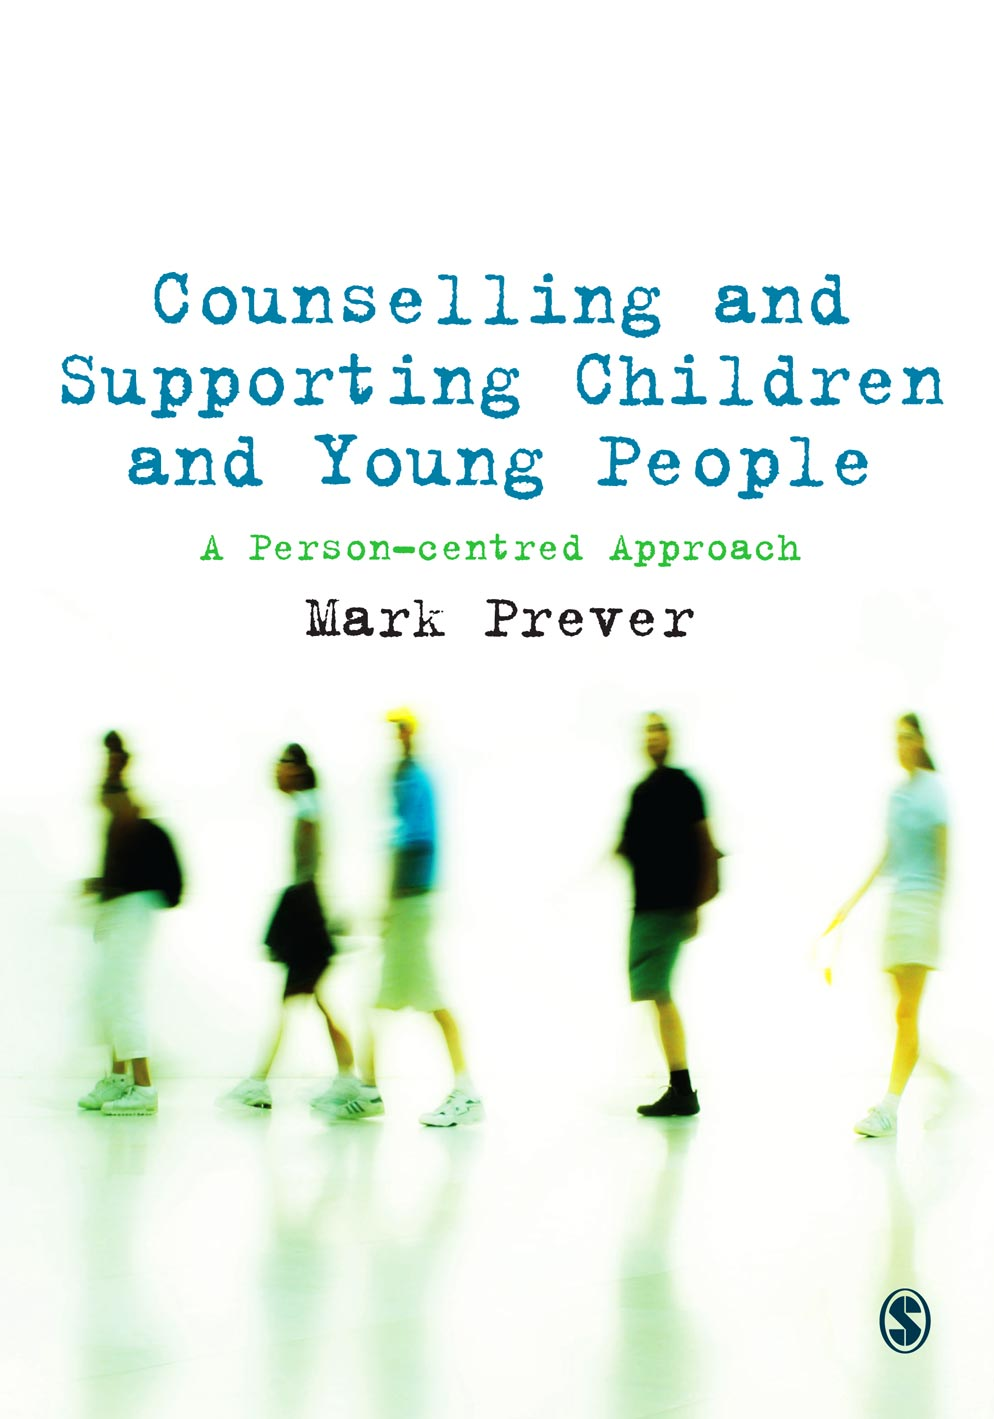 Counselling and Supporting Children and Young People A Person-centred Approach